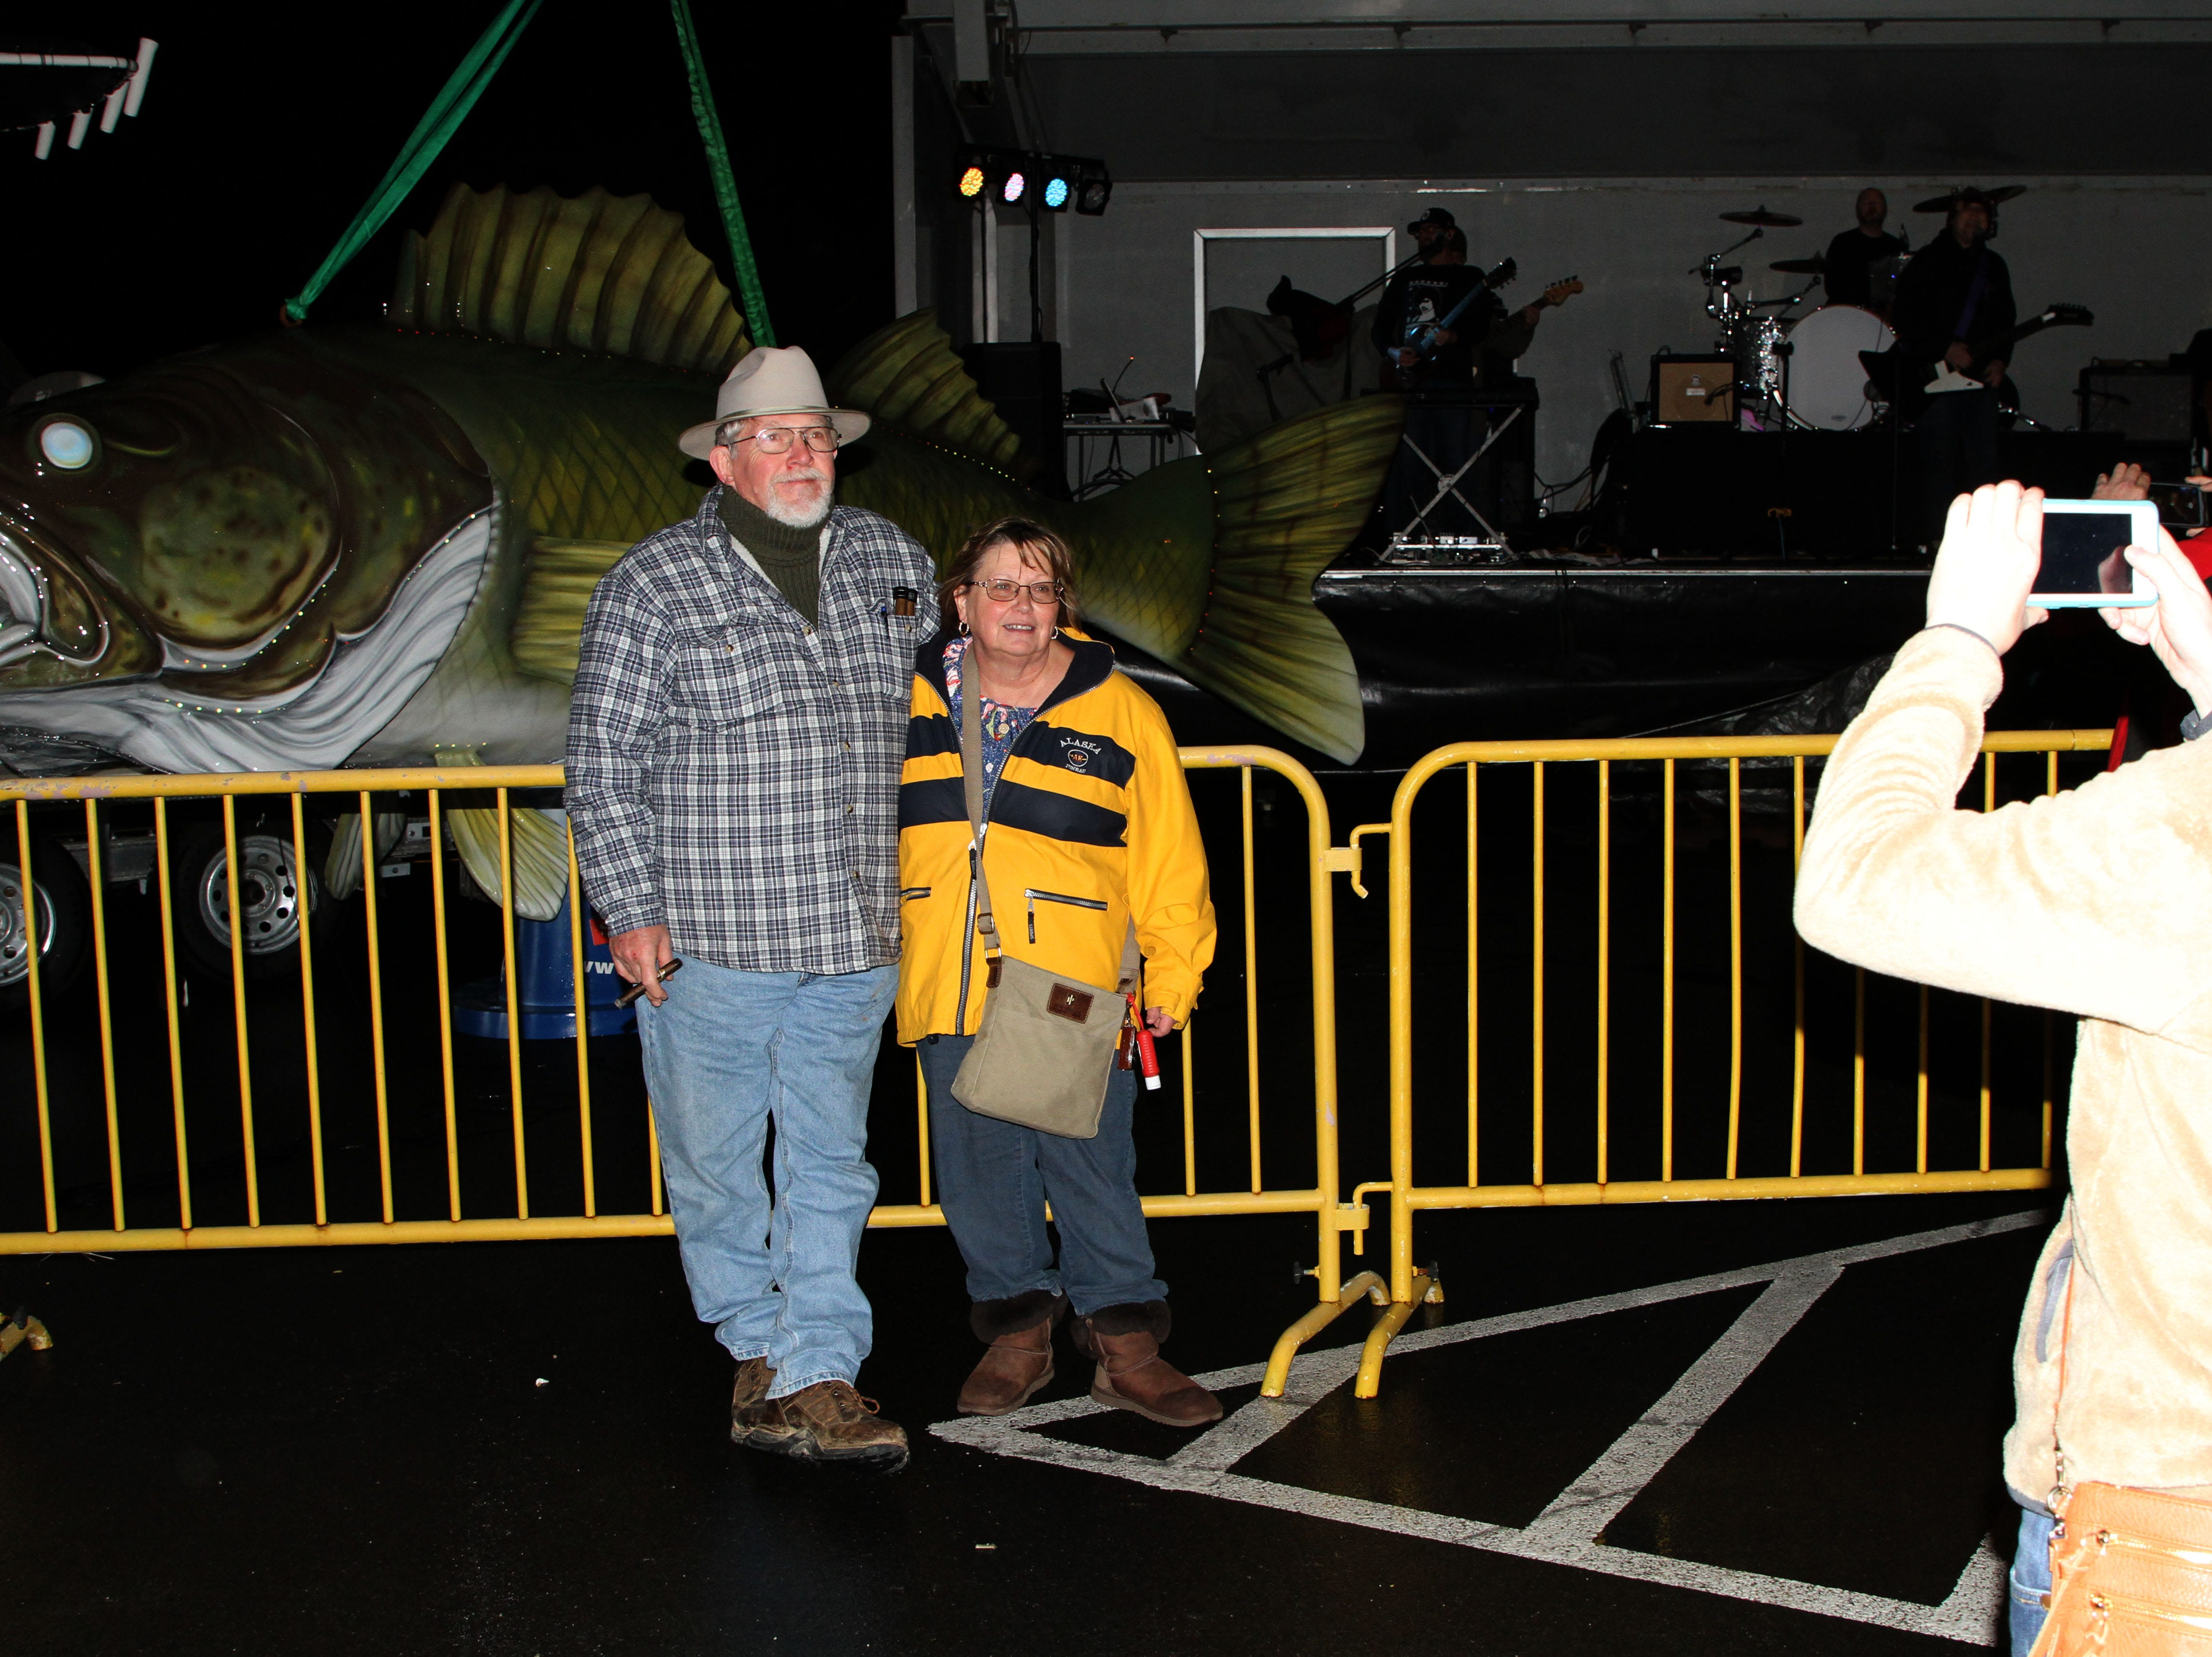 Port Clinton celebrates New Year's 2019 with Walleye Drop